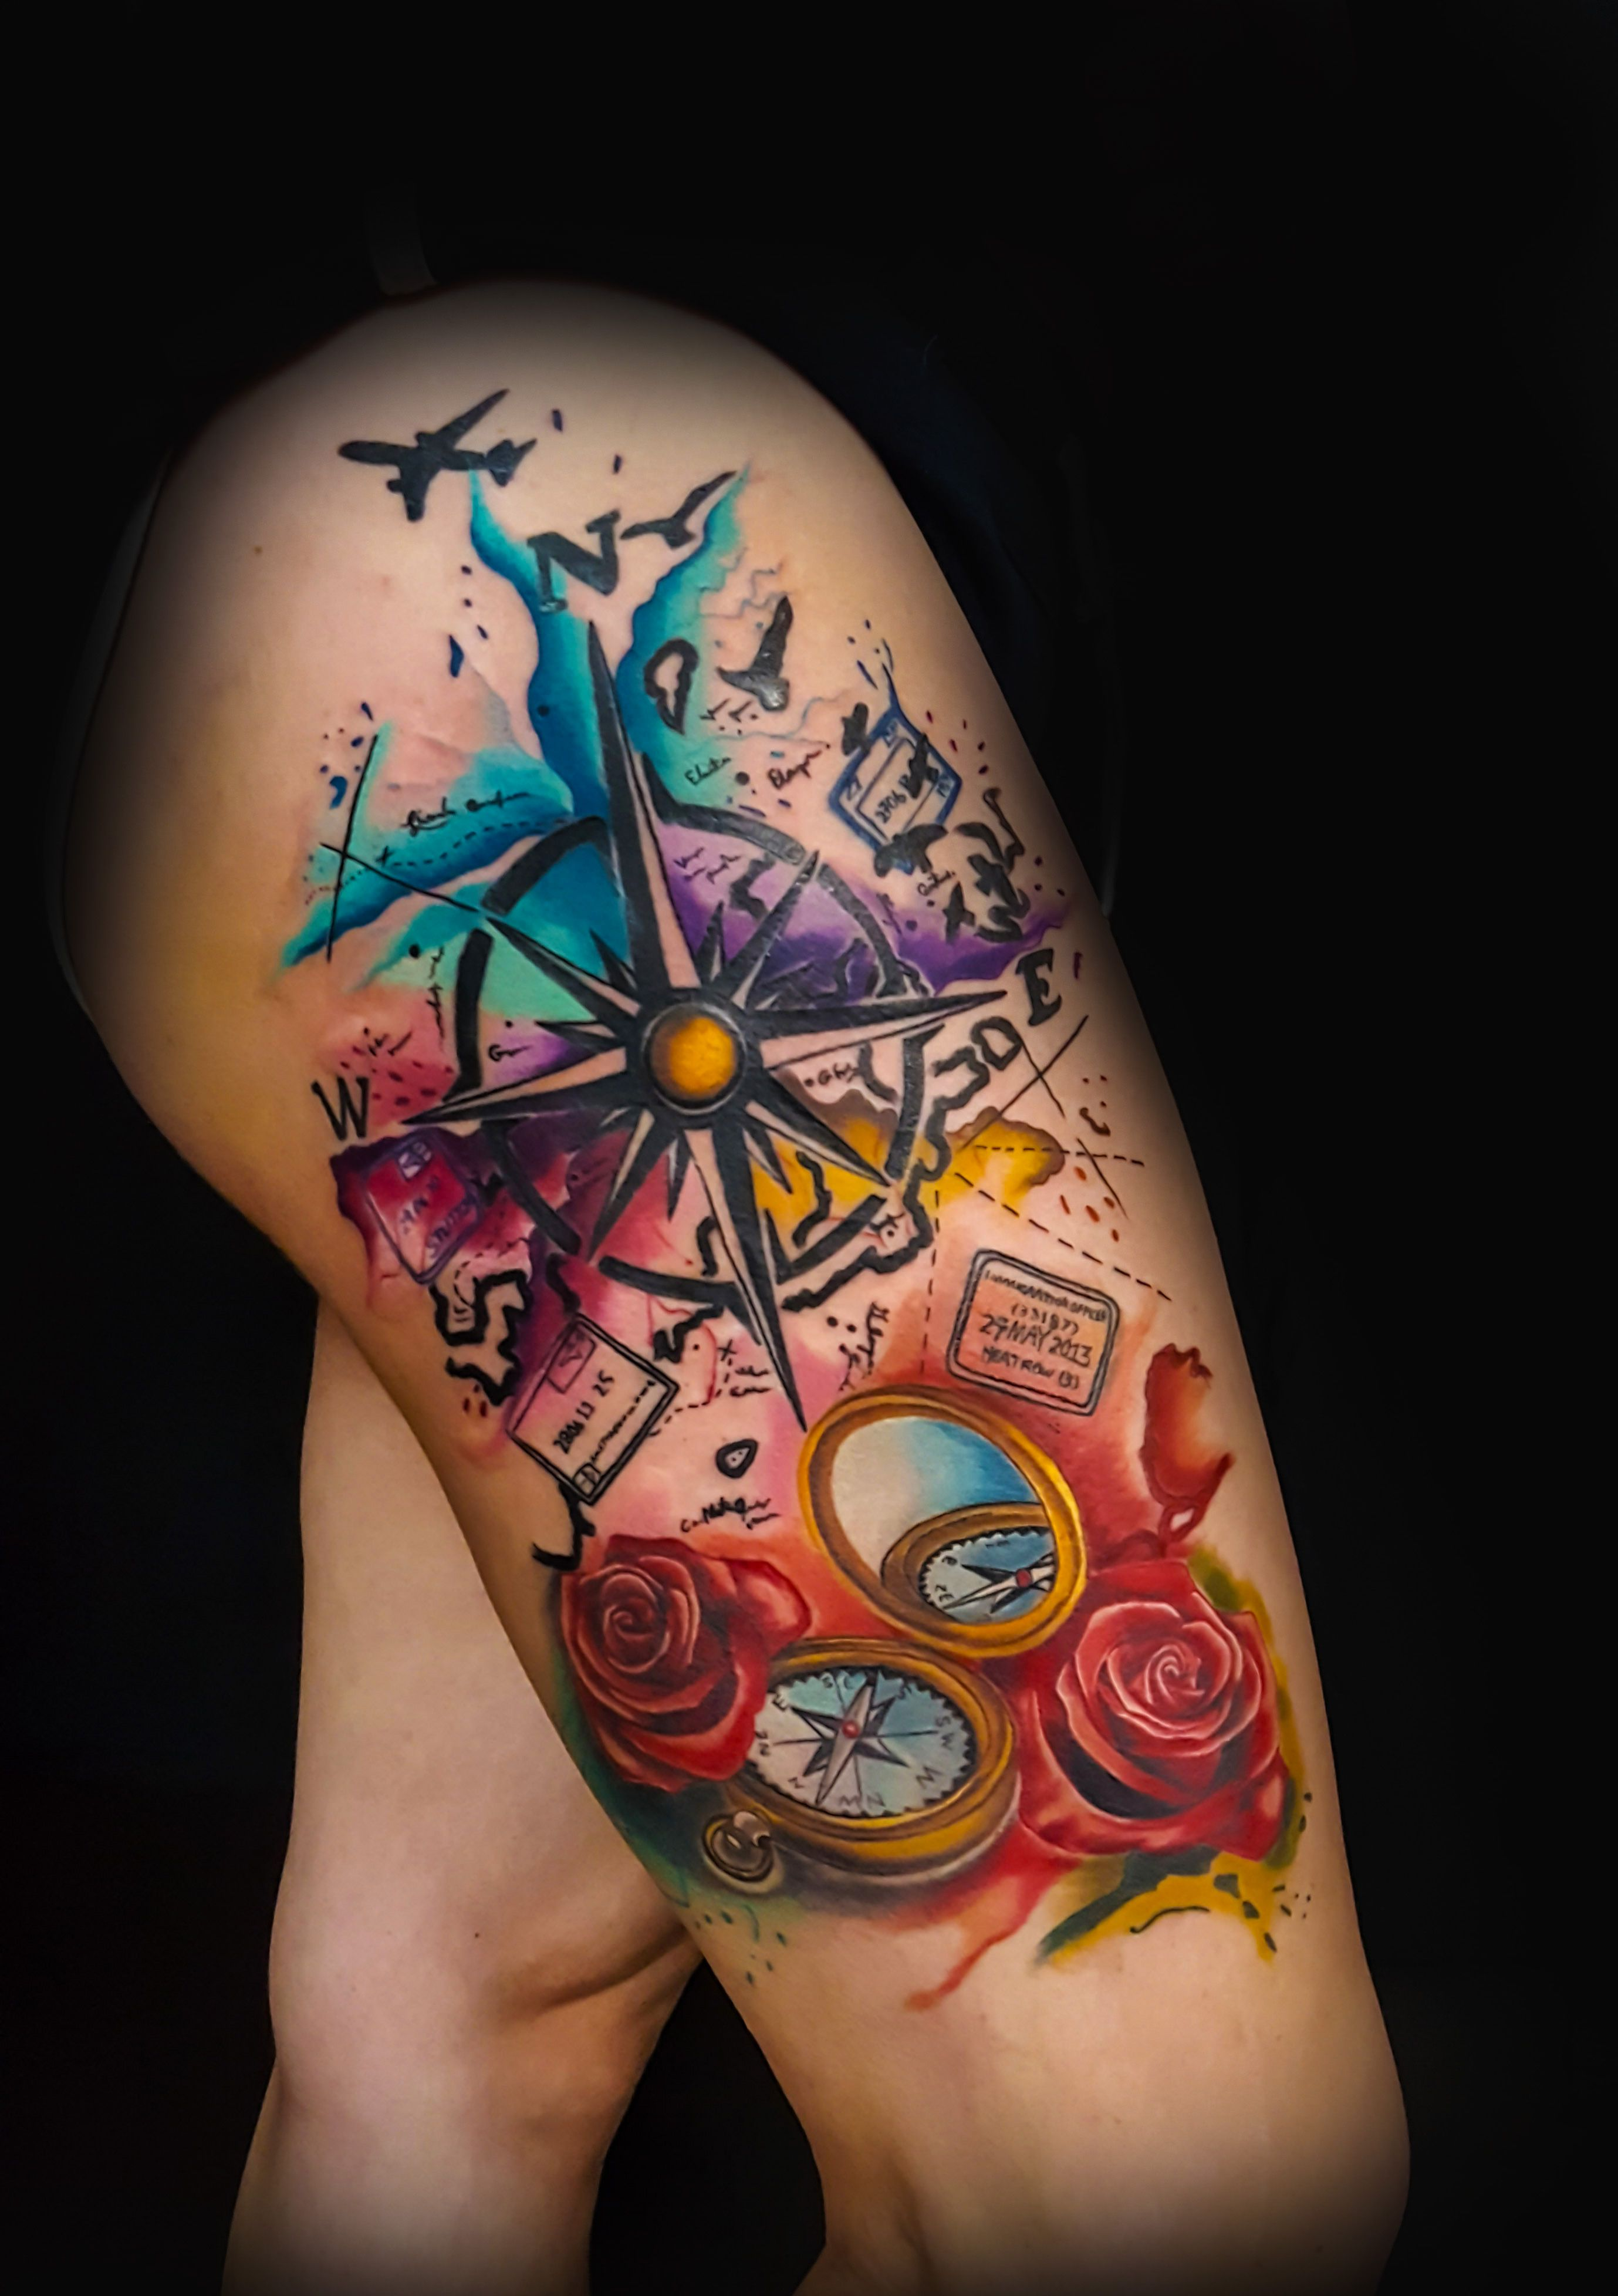 Love To Travel Tattoo Ink Tattoos Compass Tattoo Watercolor